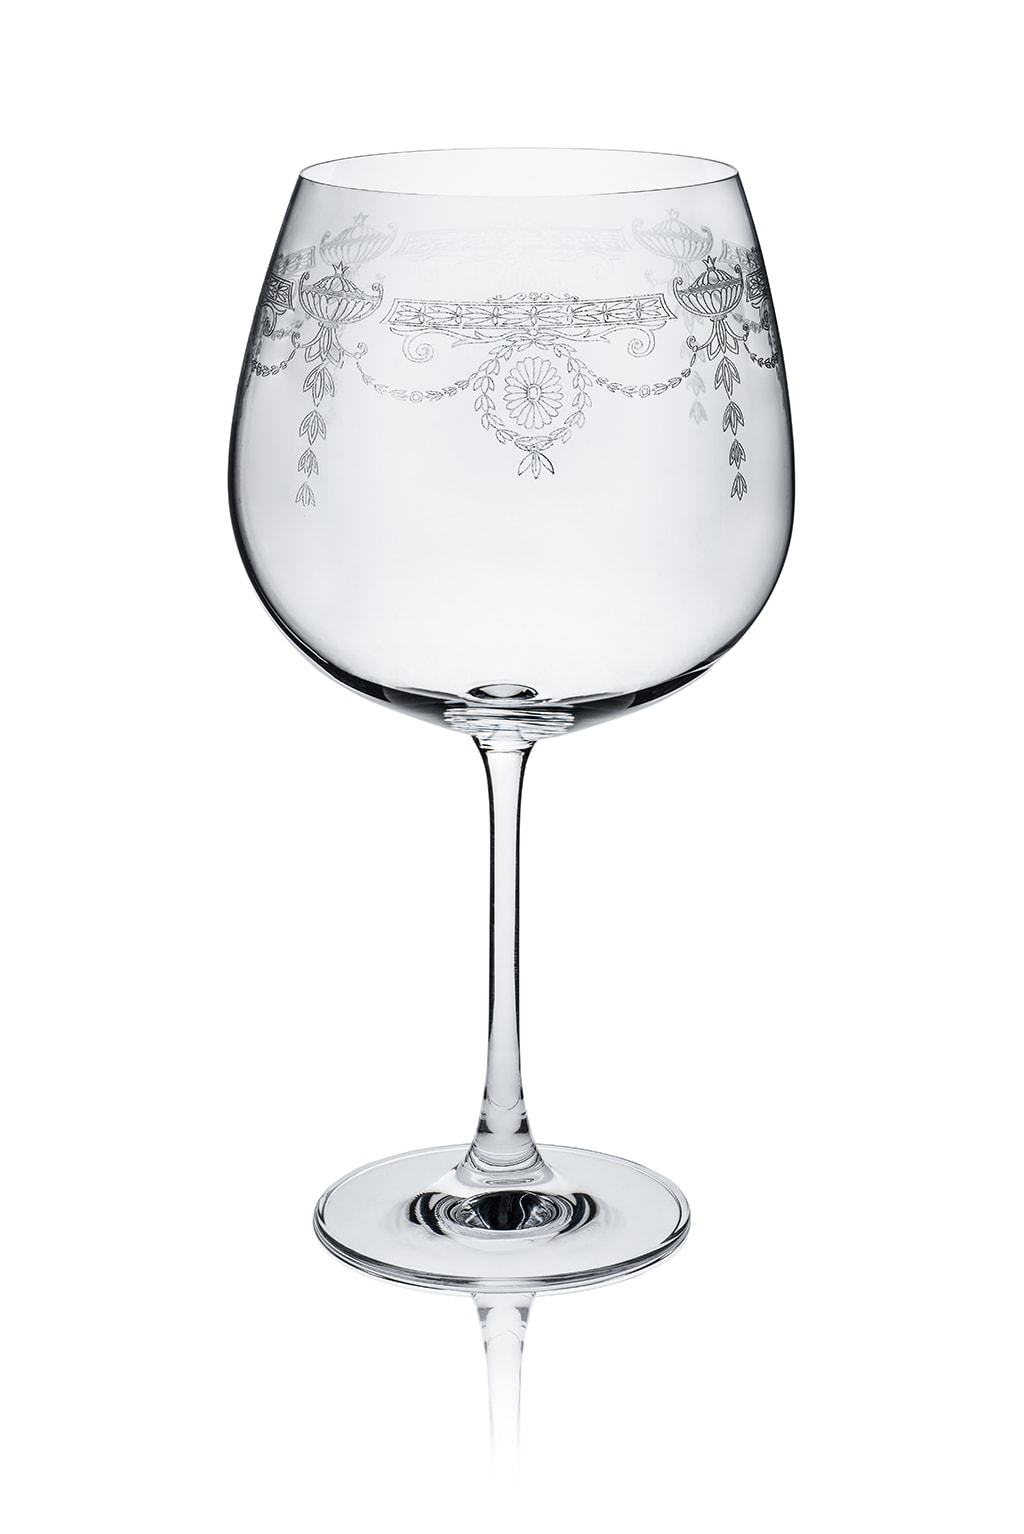 Catherine Gin Glass, part of set of 6 drinking glasses